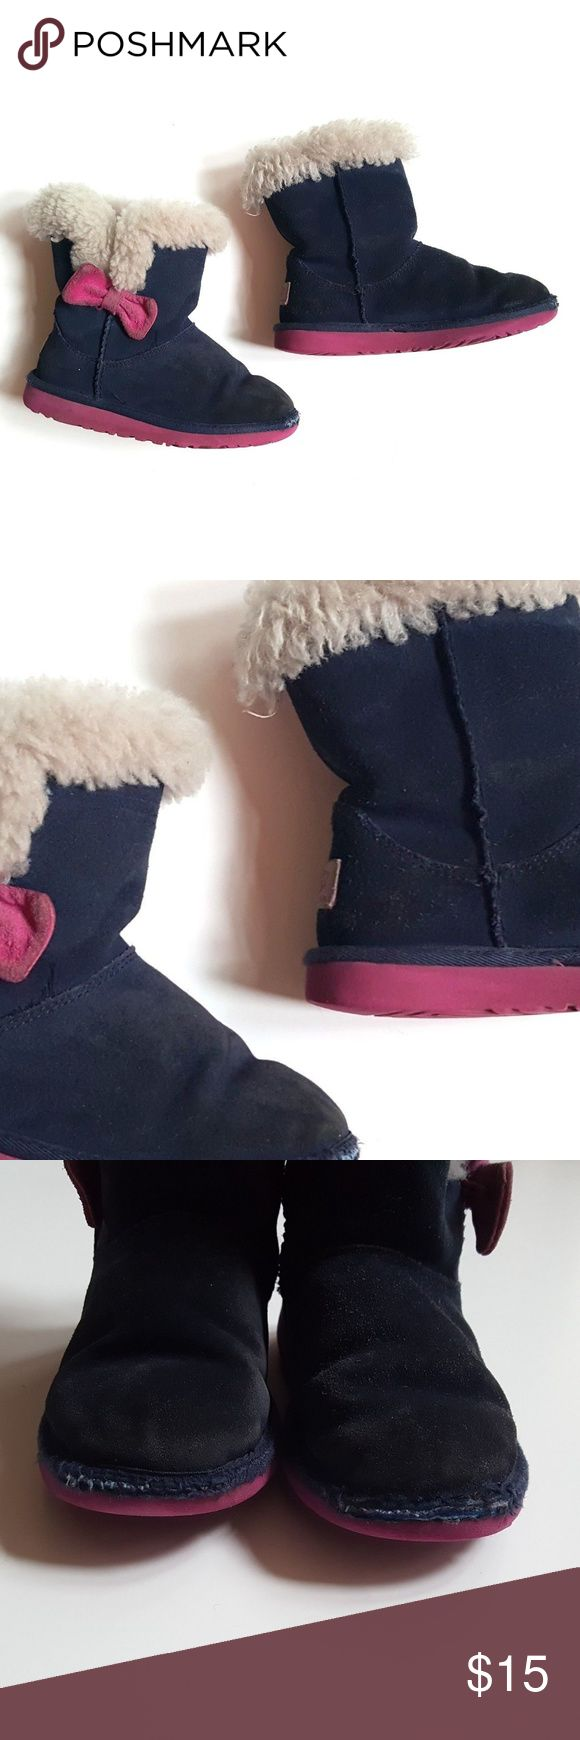 UGG Australia 13 Little Girls Kourtney Boots PLAY UGG Australia Little Girls Kourtney Boots Navy Blue Magenta Bow F27115  Size 13 Little Girls   Condition:  PLAY condition with toe wear, some matting to the fur and dingy bows.   My items come from a smoke-free household, we do have a kitty, so an occasional hair may occur! UGG Shoes Boots